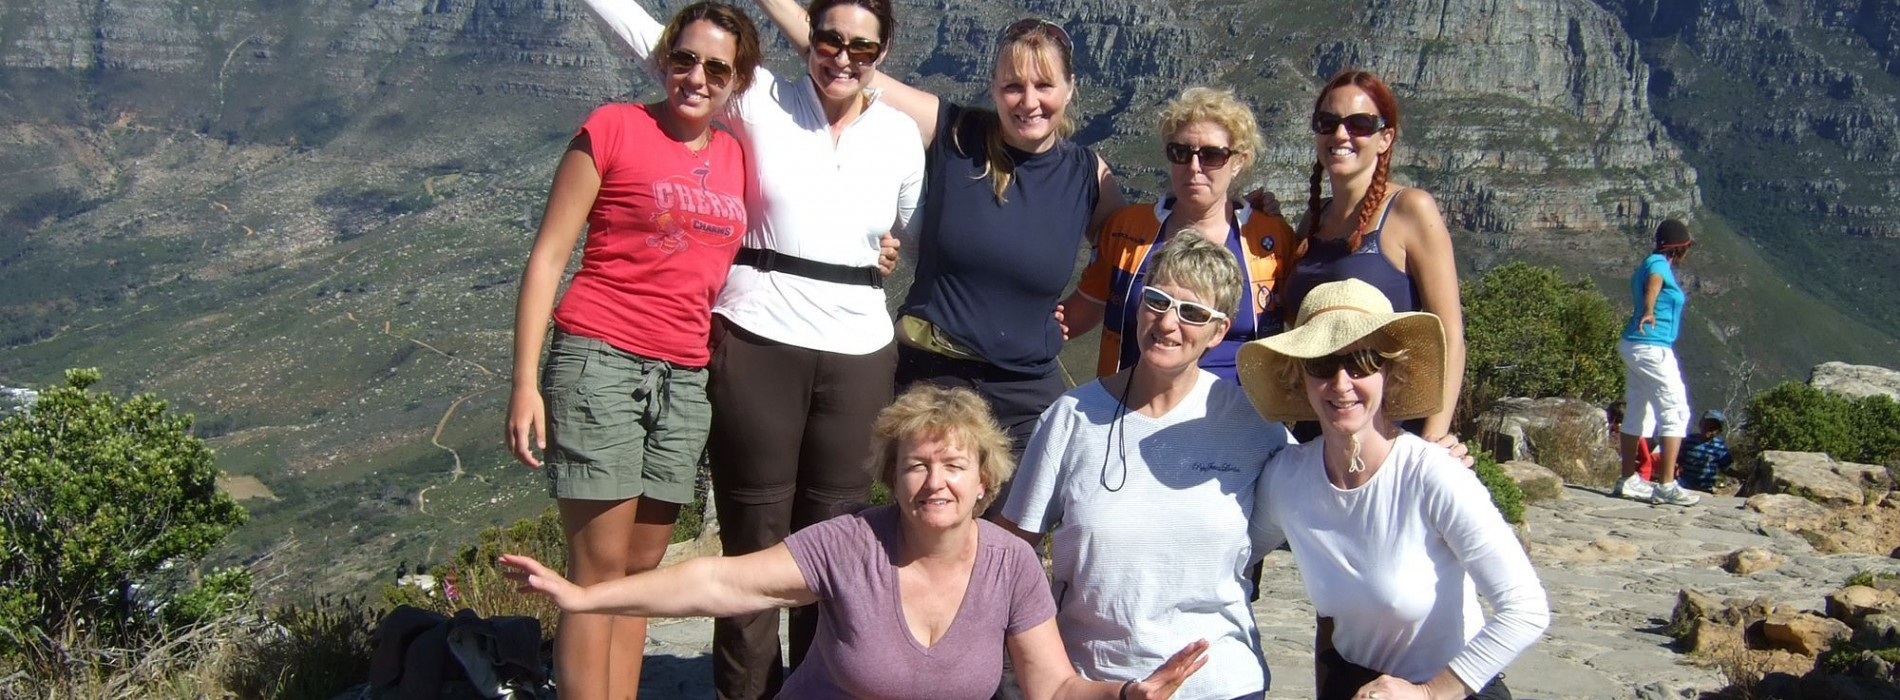 Charity_trekkers_celebrating_infront_of_Table_Mountain (2).jpg